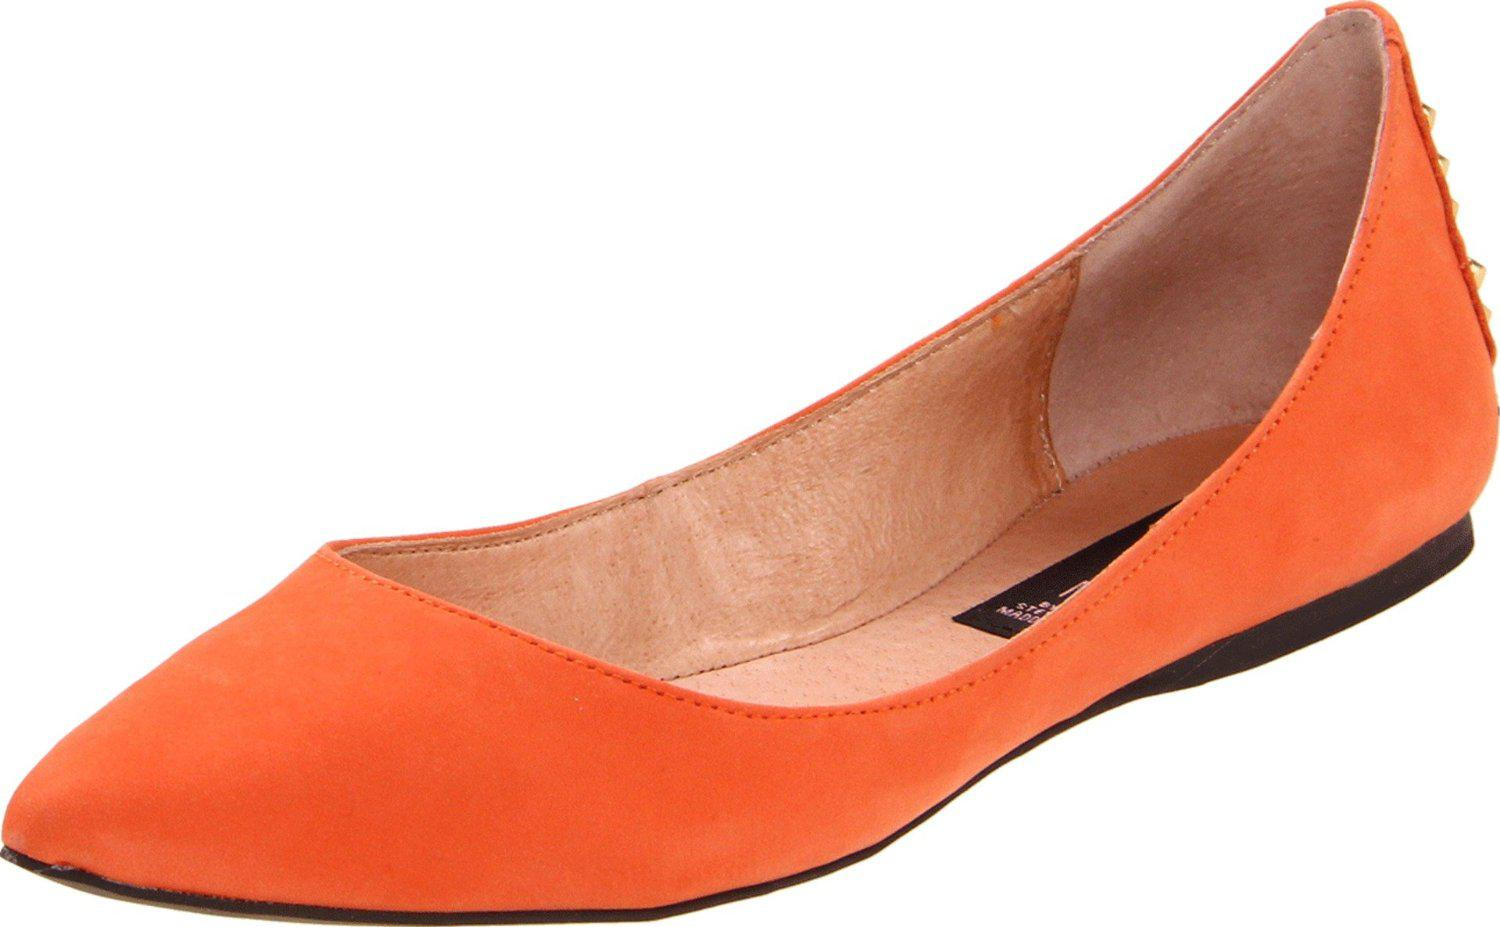 Color Matching Style Flat Shoes Womens Leather Pumps Cusp Toes Flat Heels Shoes US4.5-8 WS25P